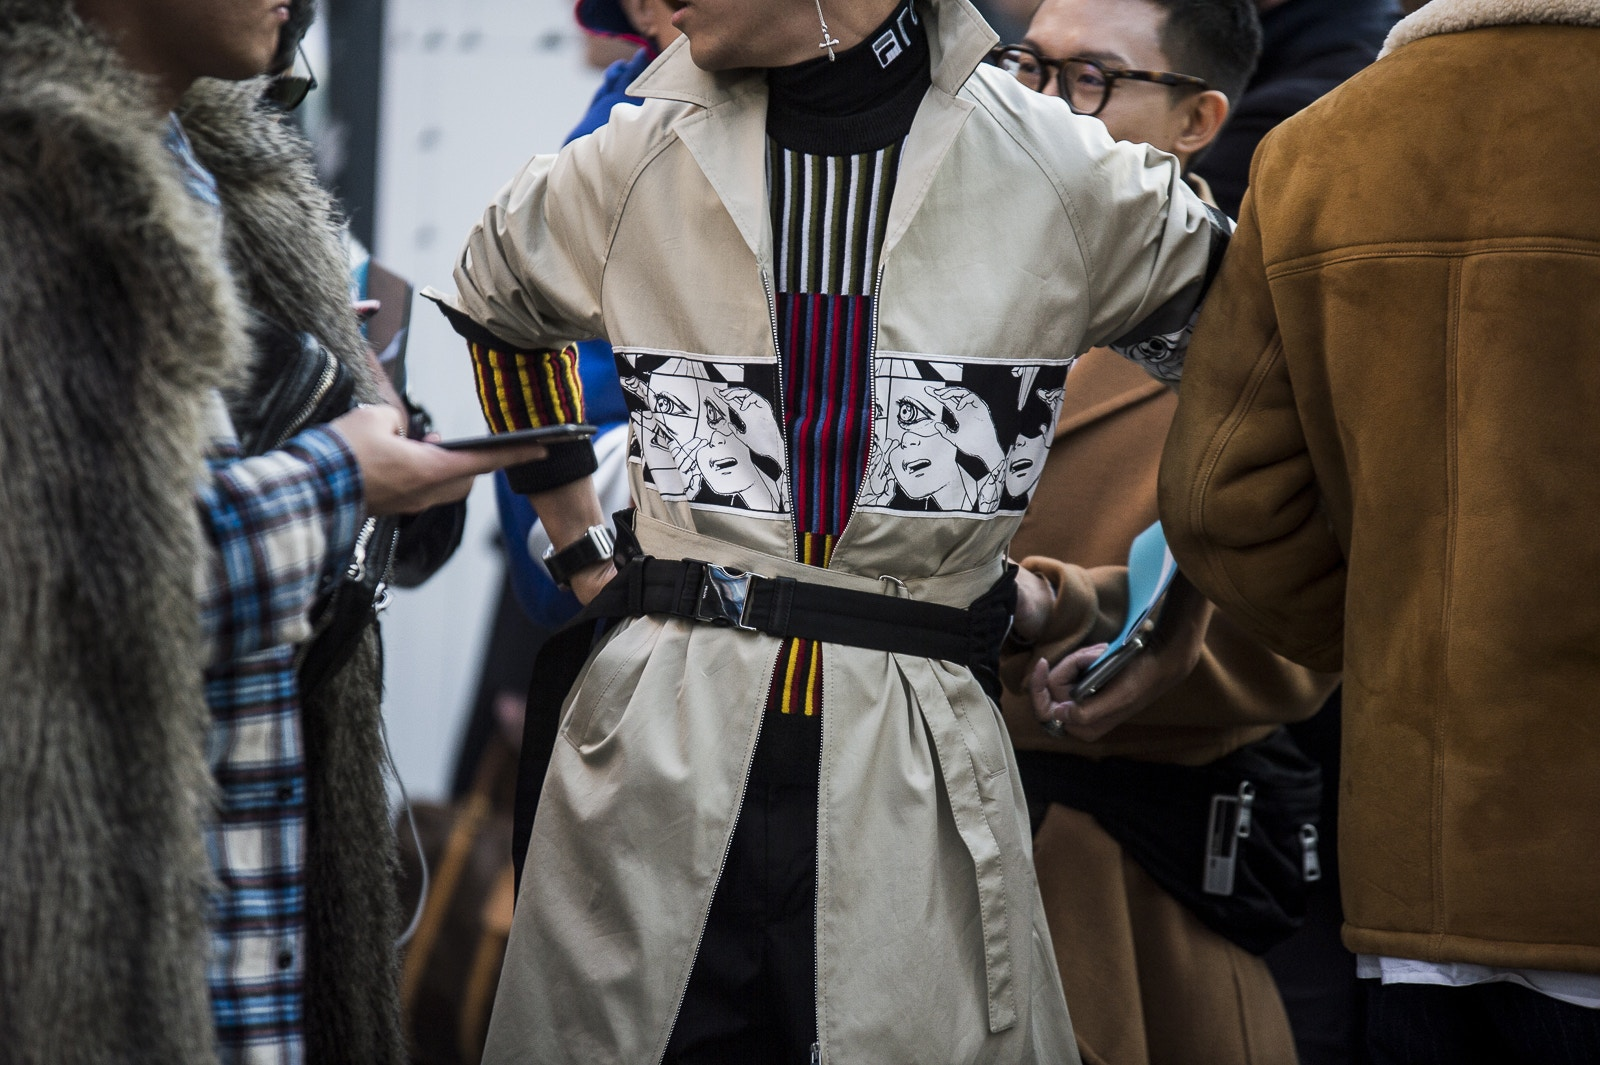 milan-fashion-week-fall-winter-2018-attendees-mixed-neutrals-and-bold-hues-for-day-2-19.jpg